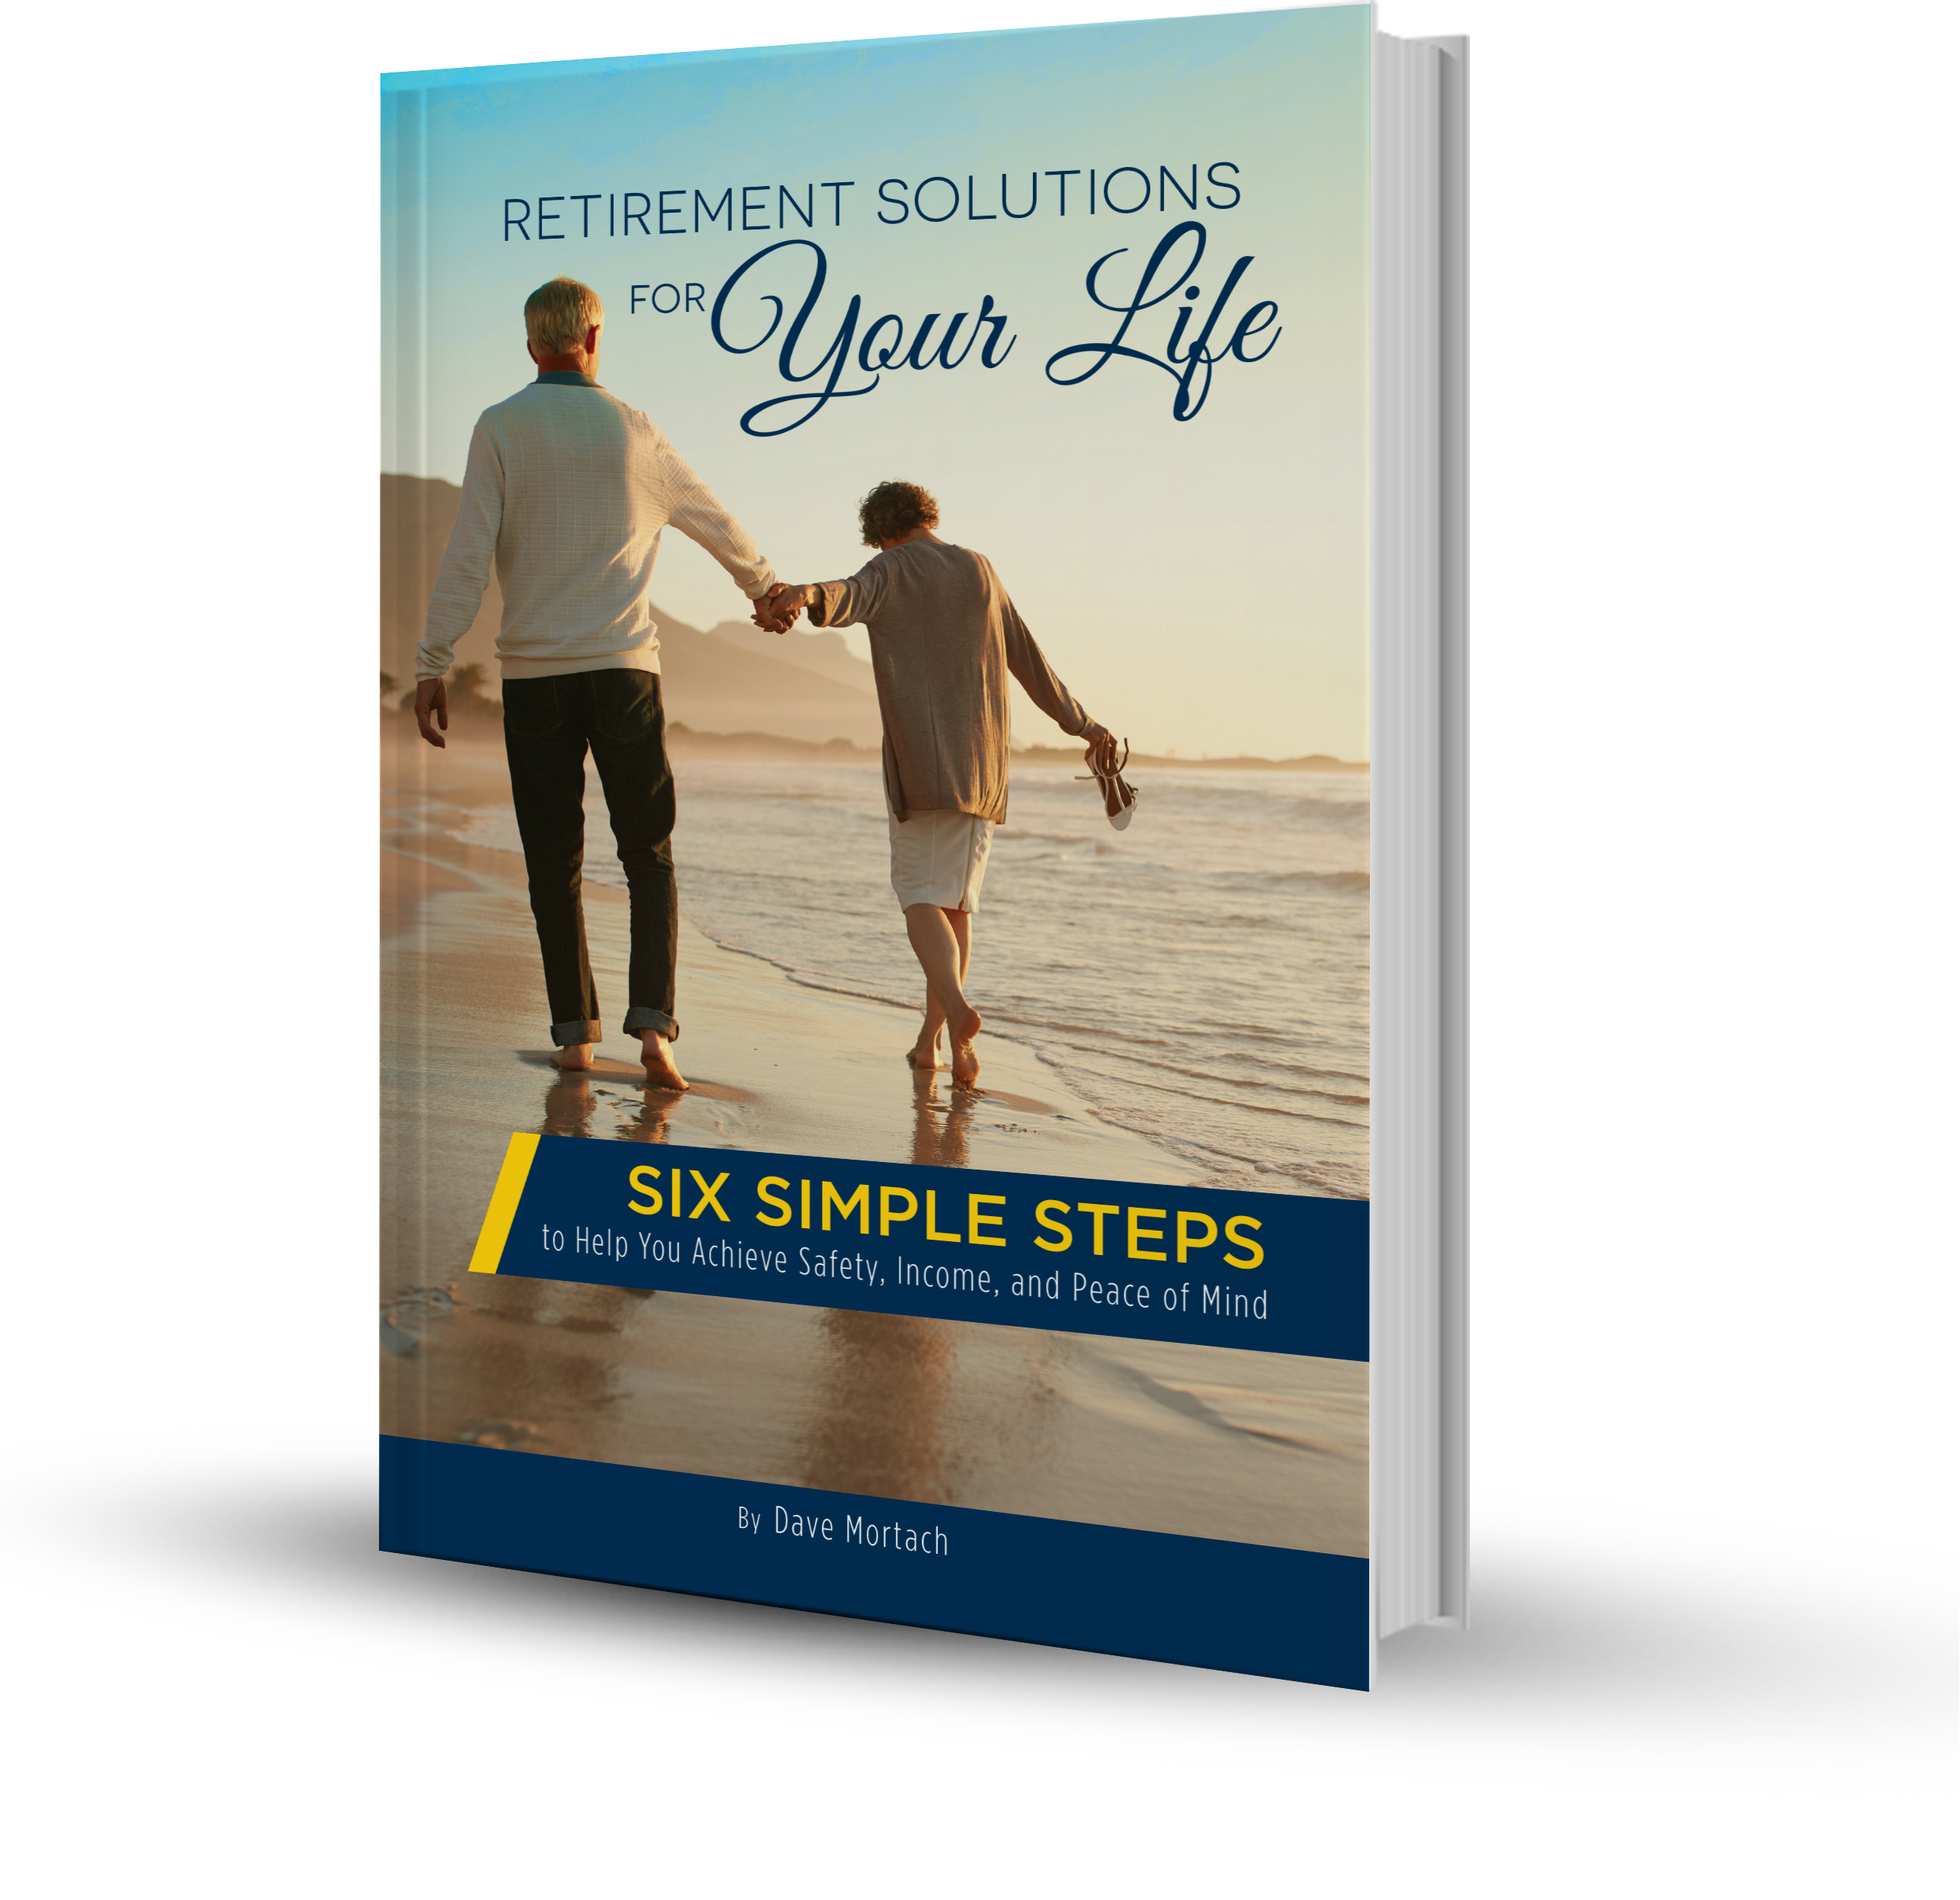 Retirement Solutions for Your Life - By Dave Mortach